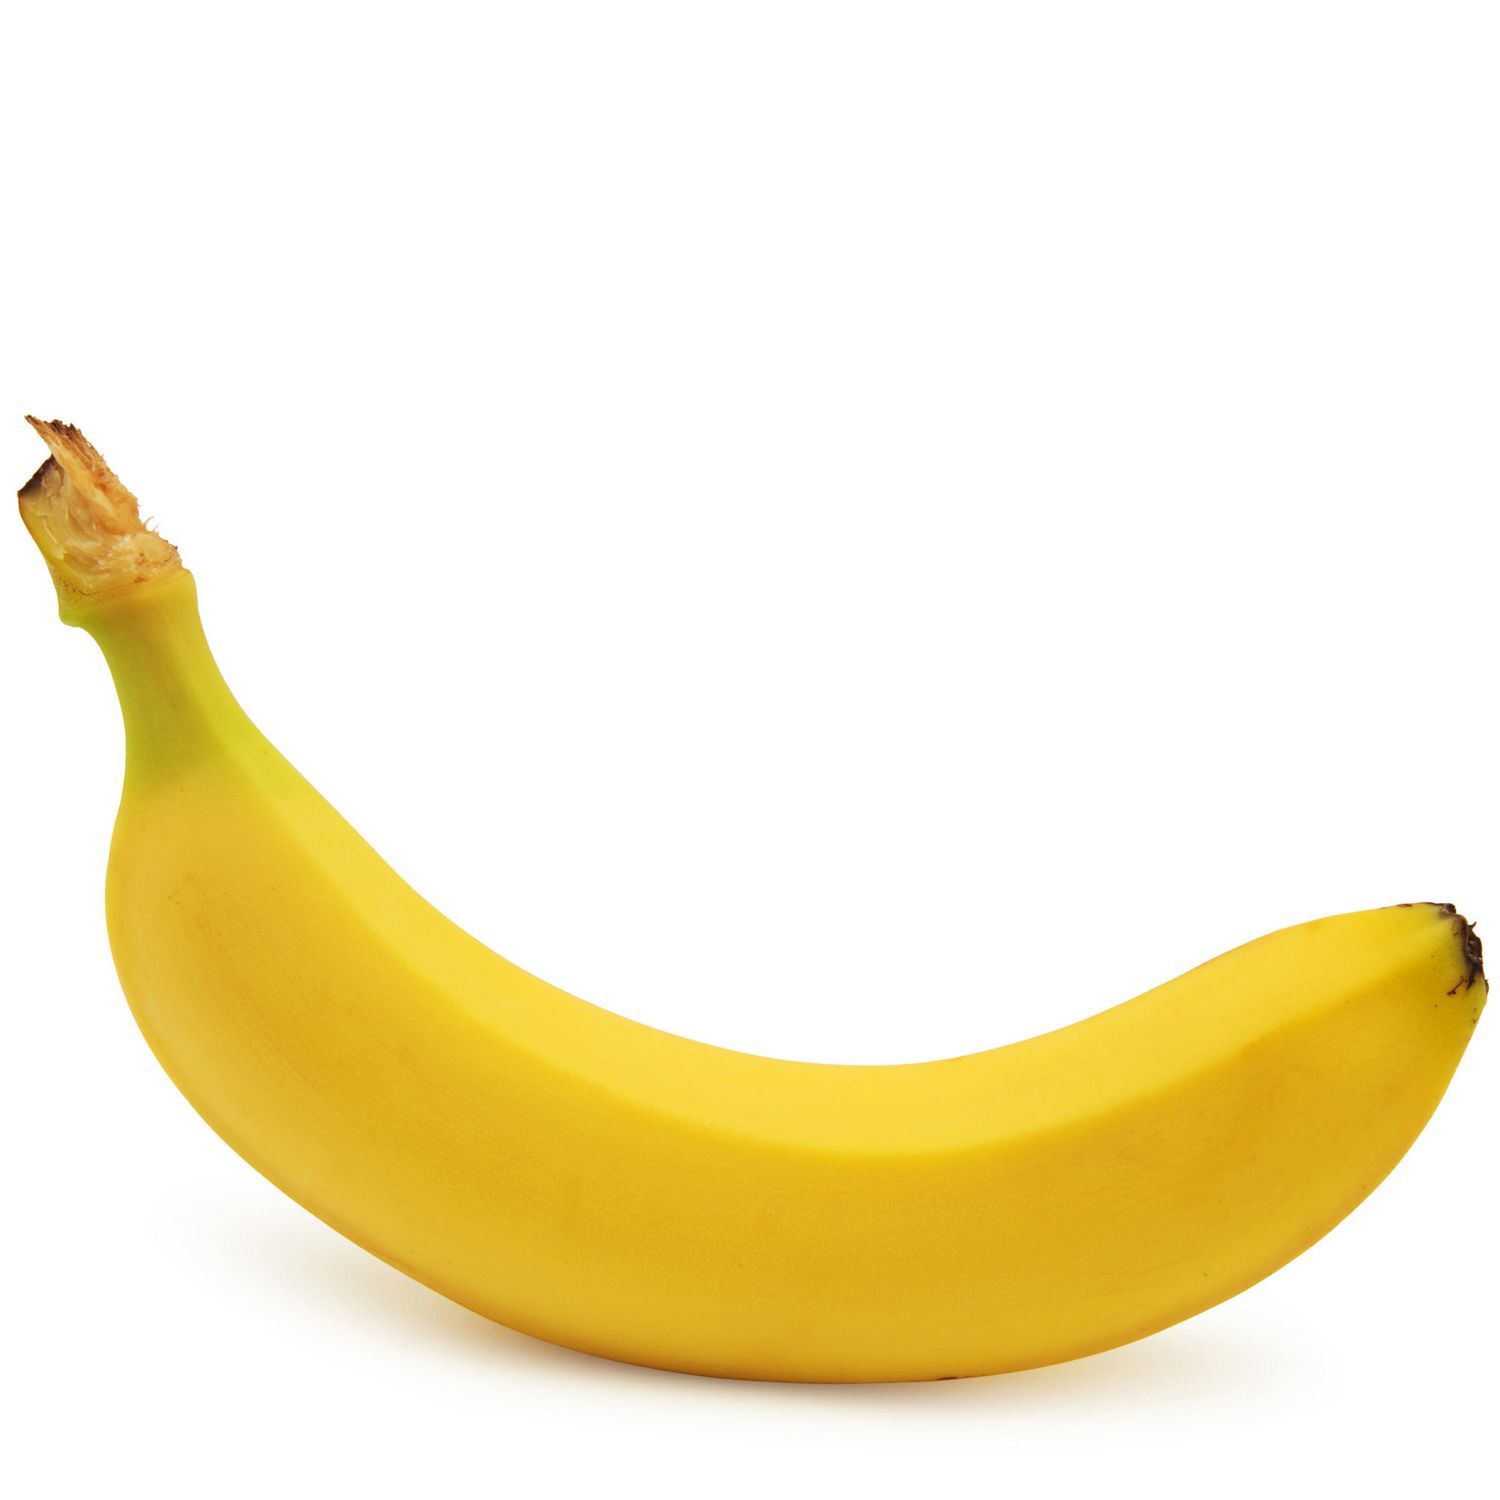 Banana Fruit Pictures